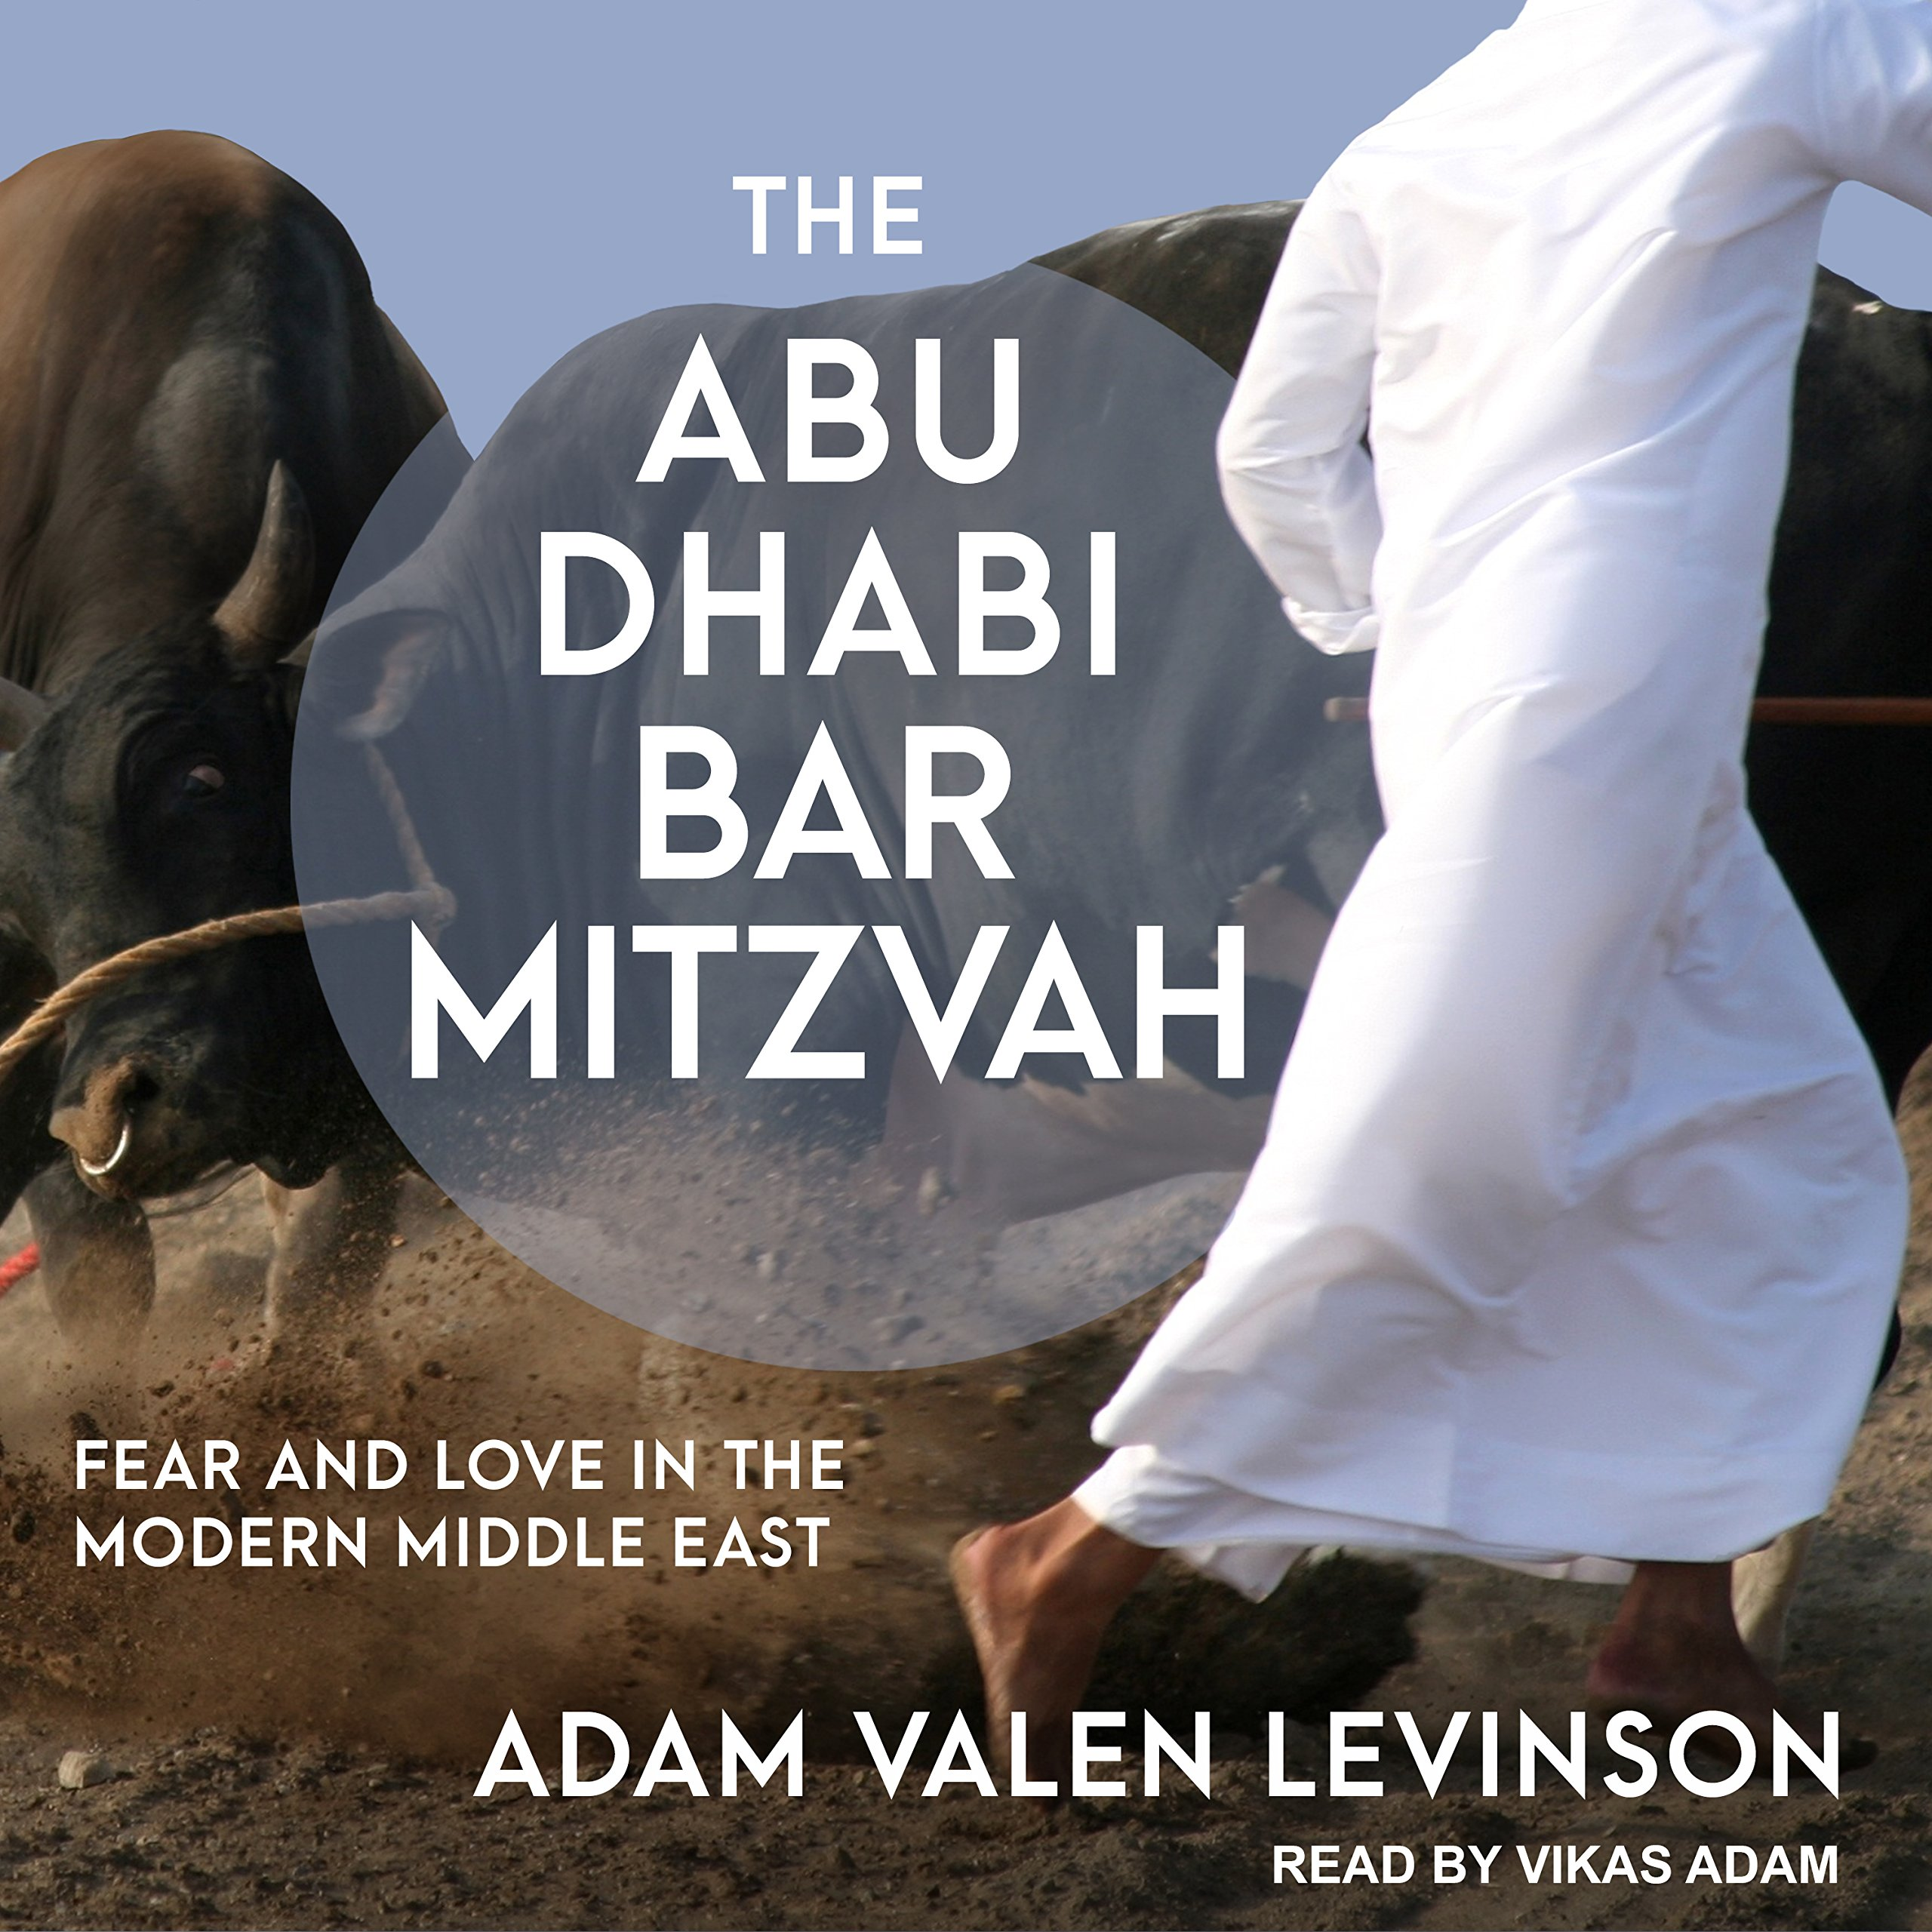 The abu dhabi bar mitzvah fear and love in the modern middle east the abu dhabi bar mitzvah fear and love in the modern middle east adam valen levinson vikas adam 9781541457683 amazon books fandeluxe Gallery